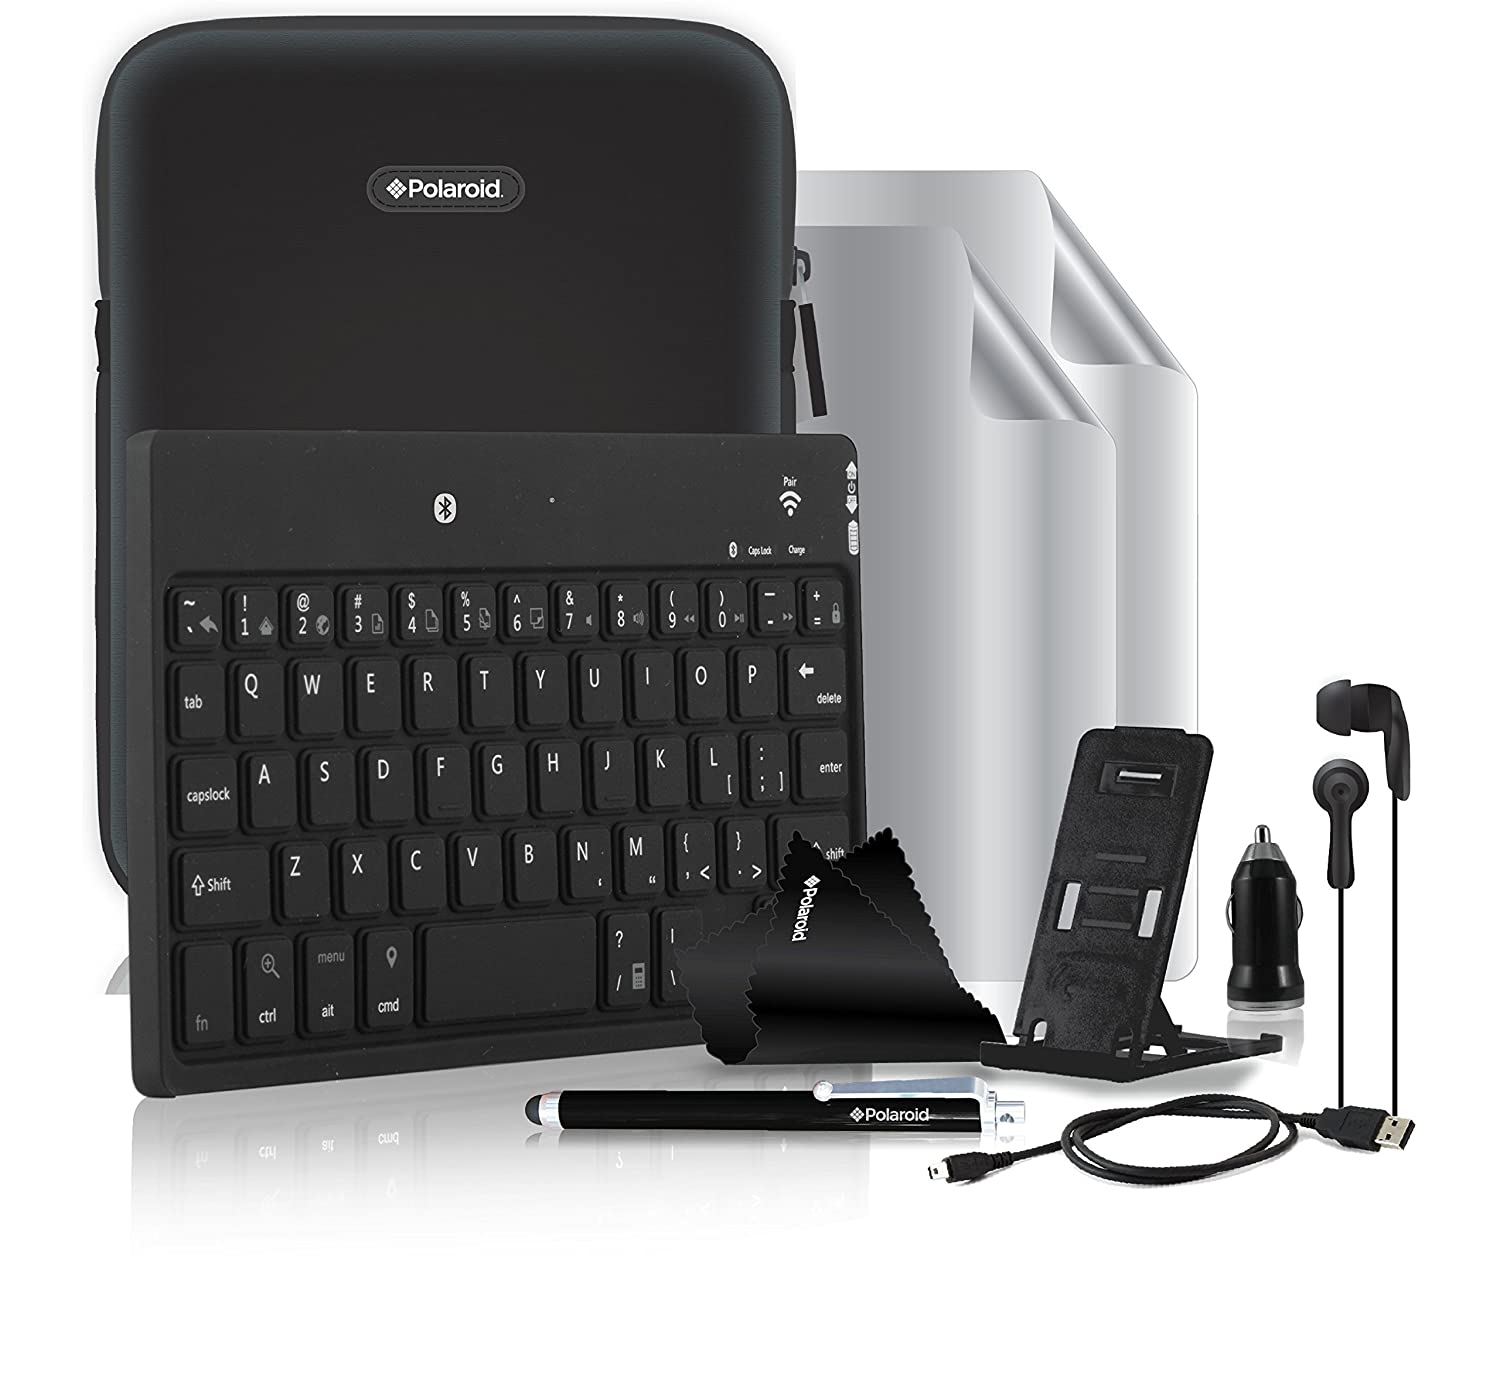 99664e08e1a POLAROID 10 Piece Premium Tablet Essentials Universal 7-8 Inch Accessory  Bundle Kit with Bluetooth Keyboard, Sleeve Case and More (PTAK9):  Amazon.co.uk: ...